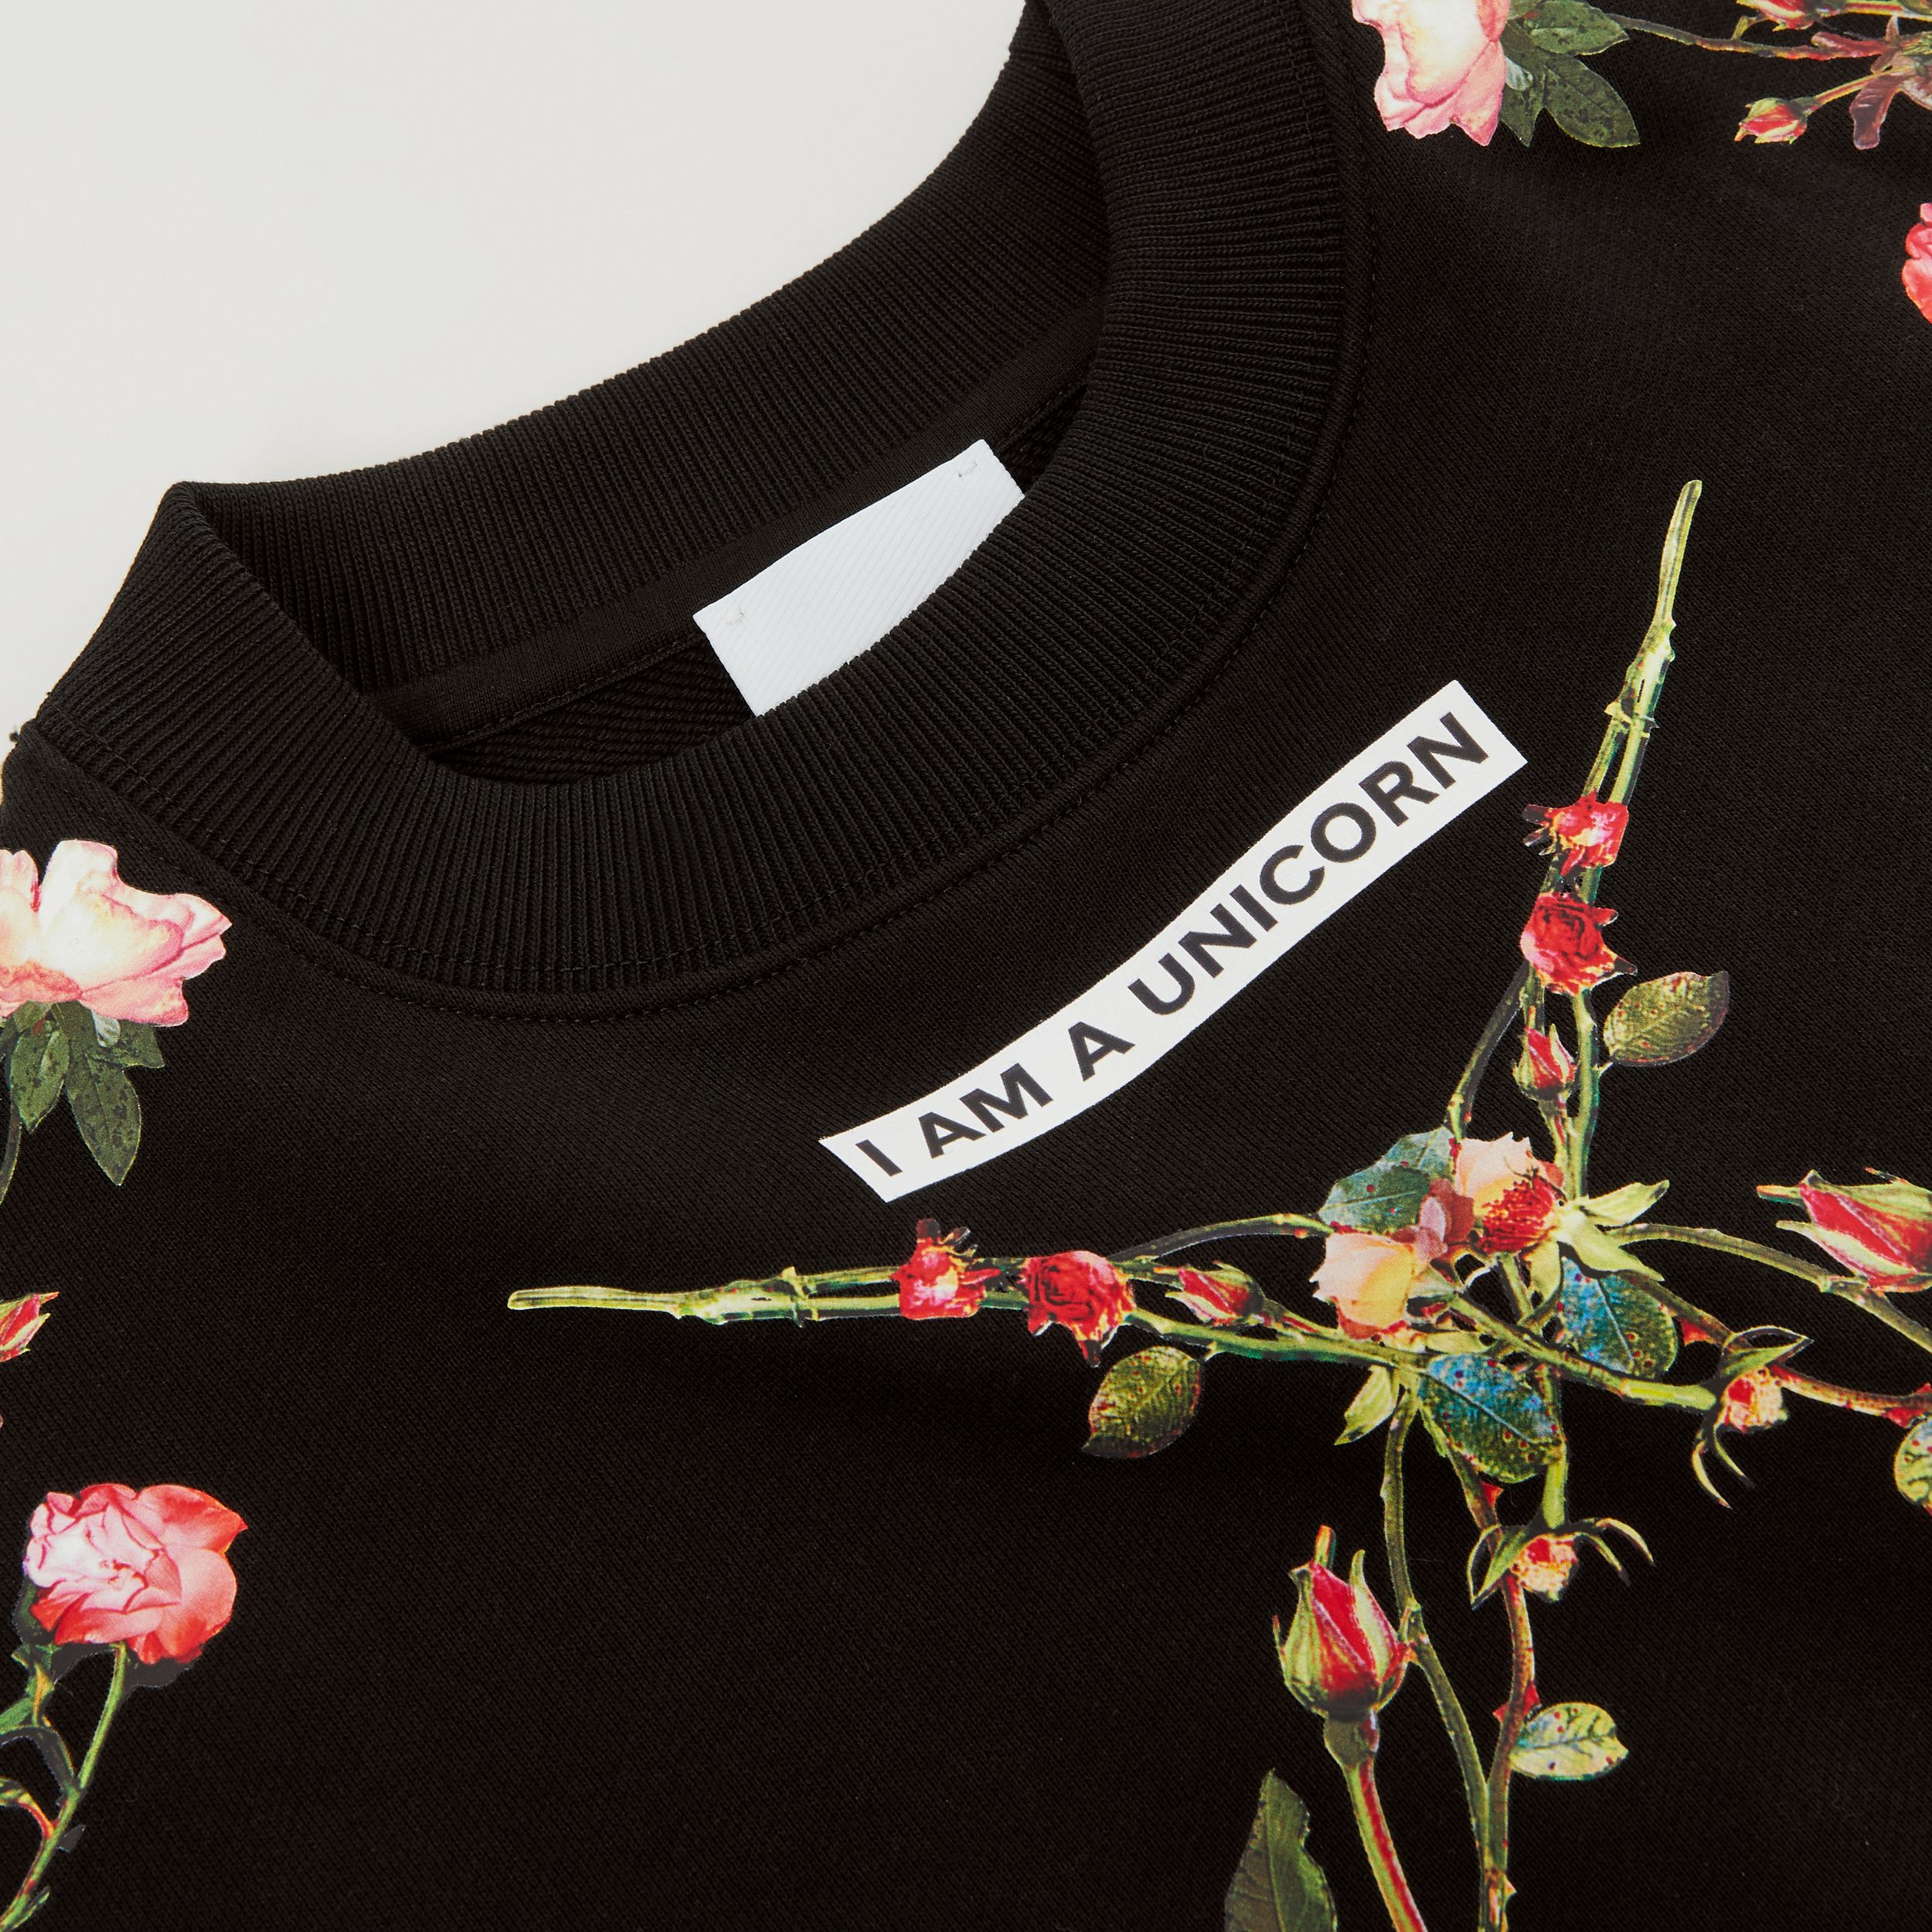 Montage Print Cotton Sweatshirt in Black | Burberry Australia - 2